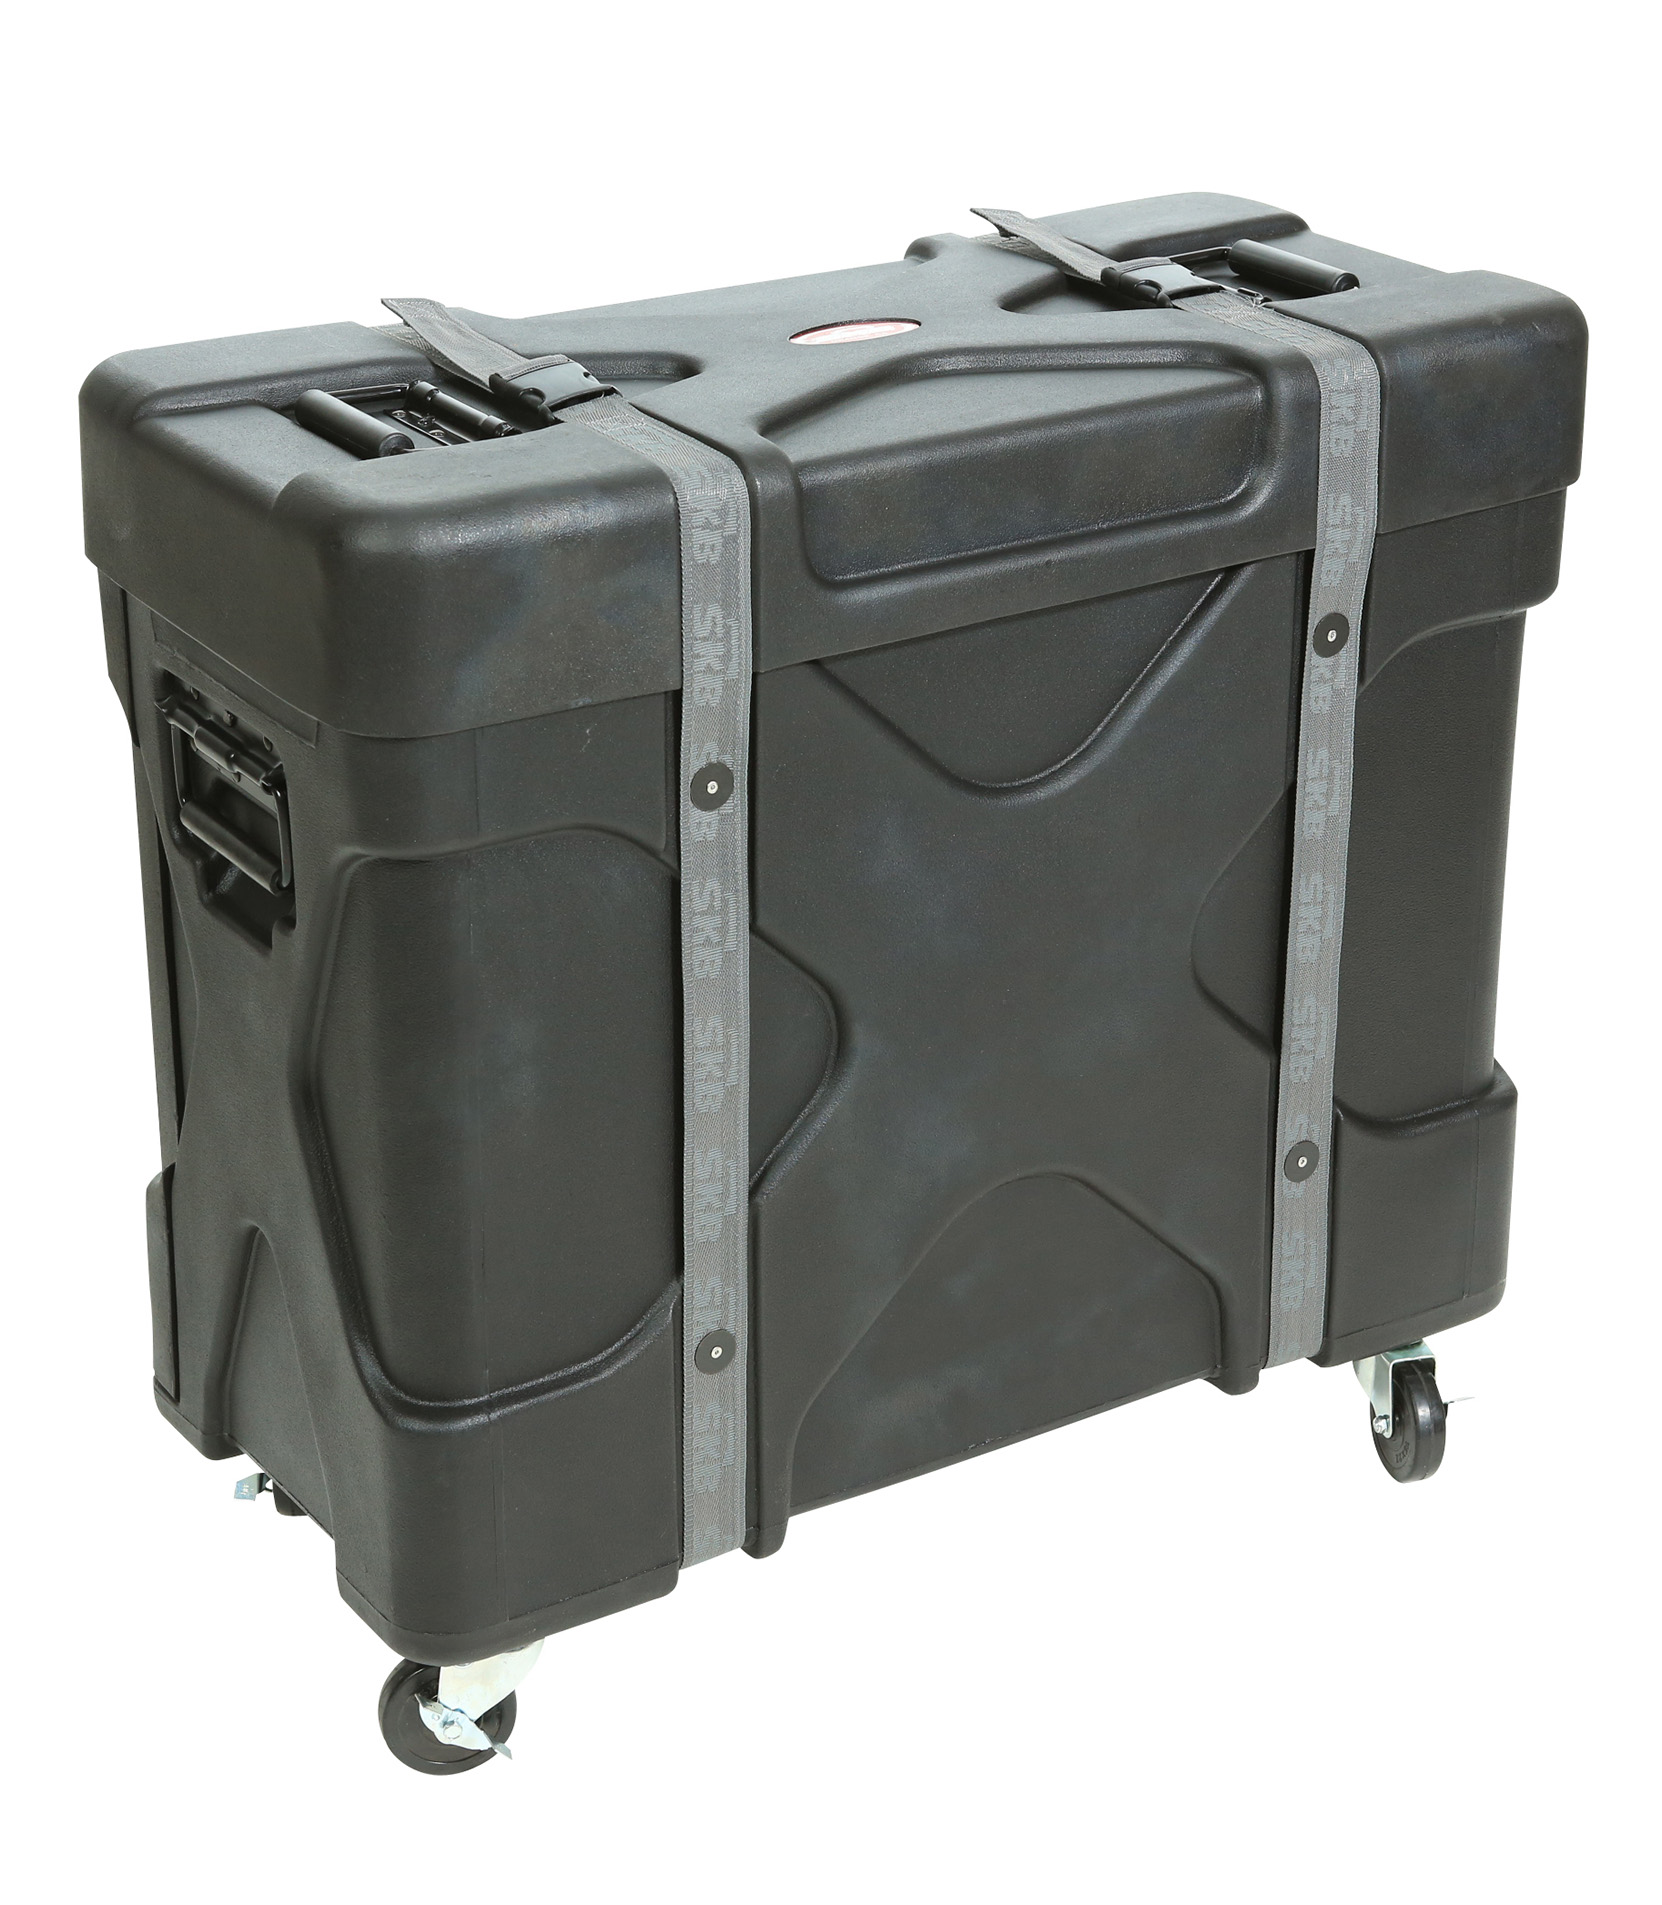 Melody House Musical Instruments Store - 1SKB TPX2 Trap X2 Drum Hardware Case w built in C